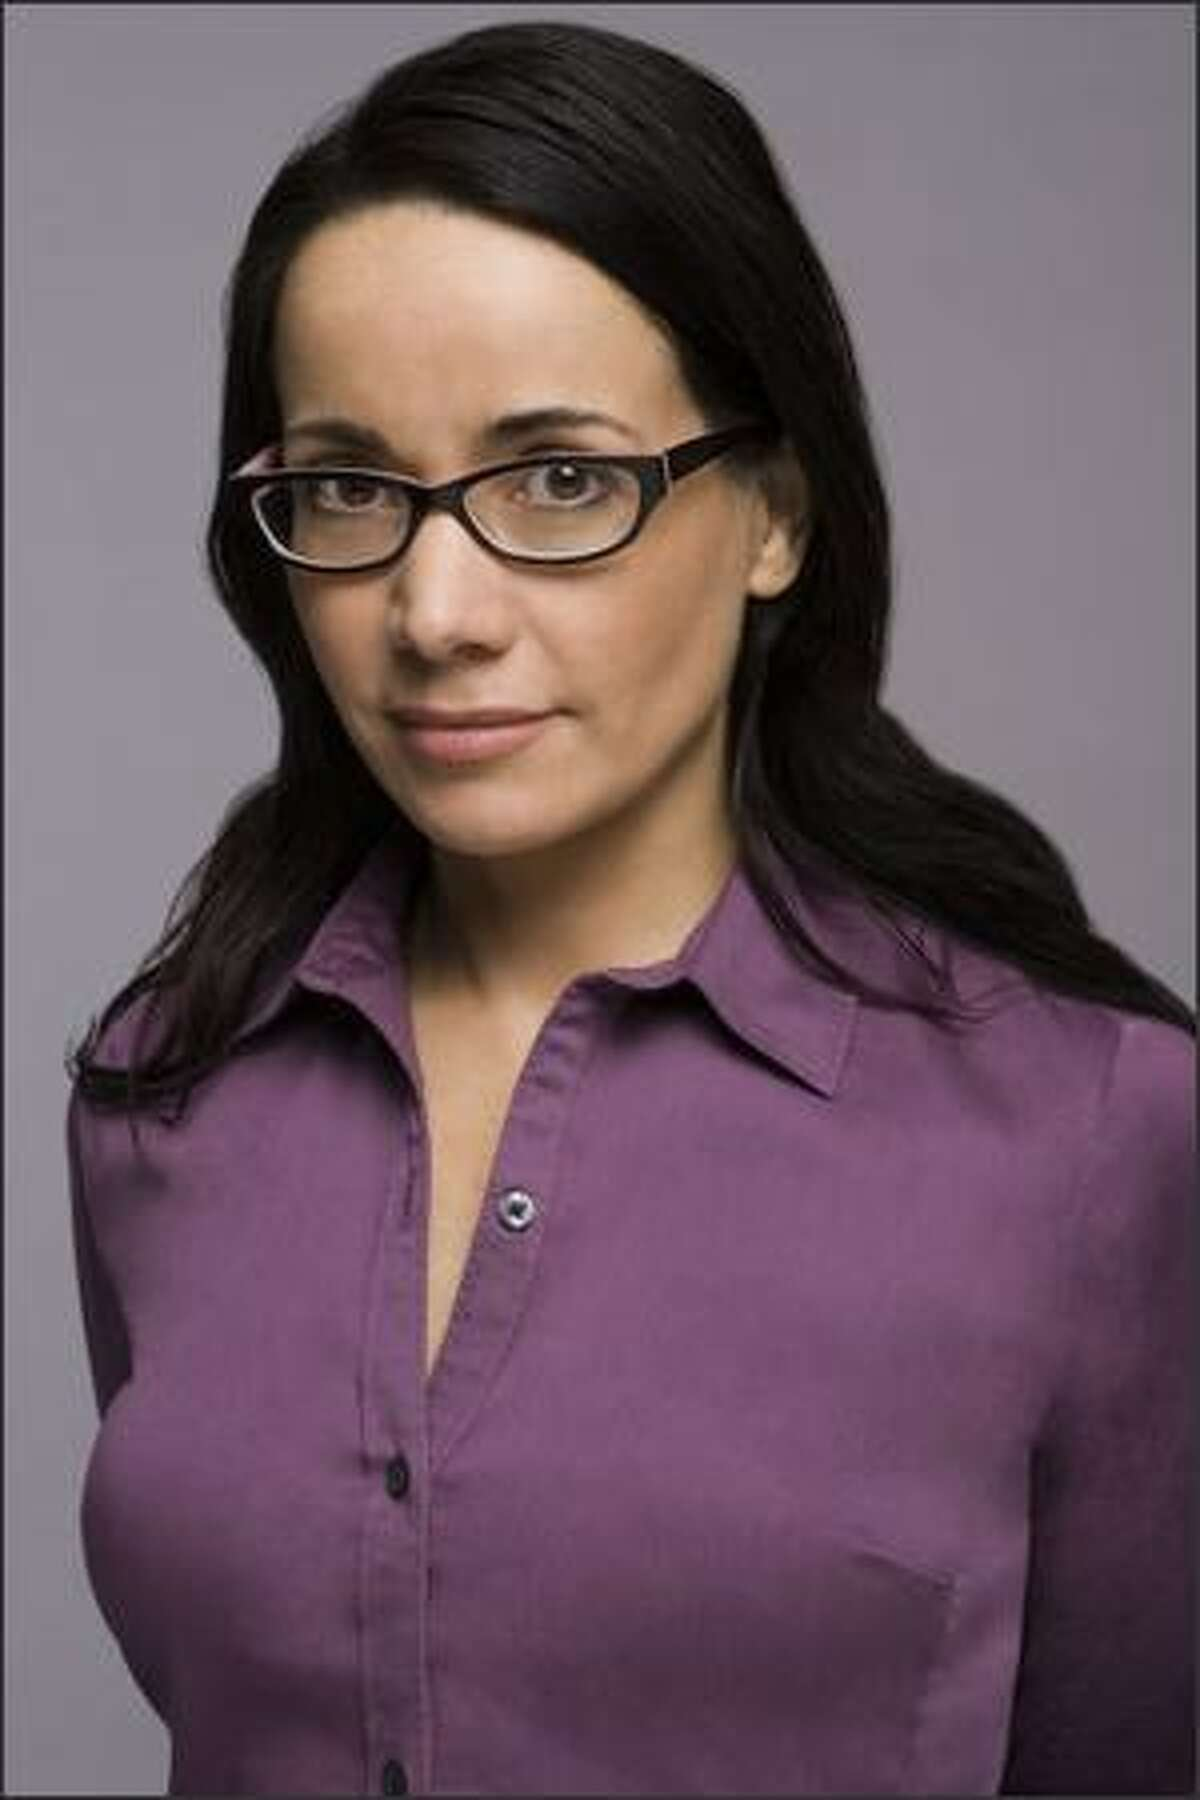 Janeane Garofalo as Janis Gold. The clock is ticking for